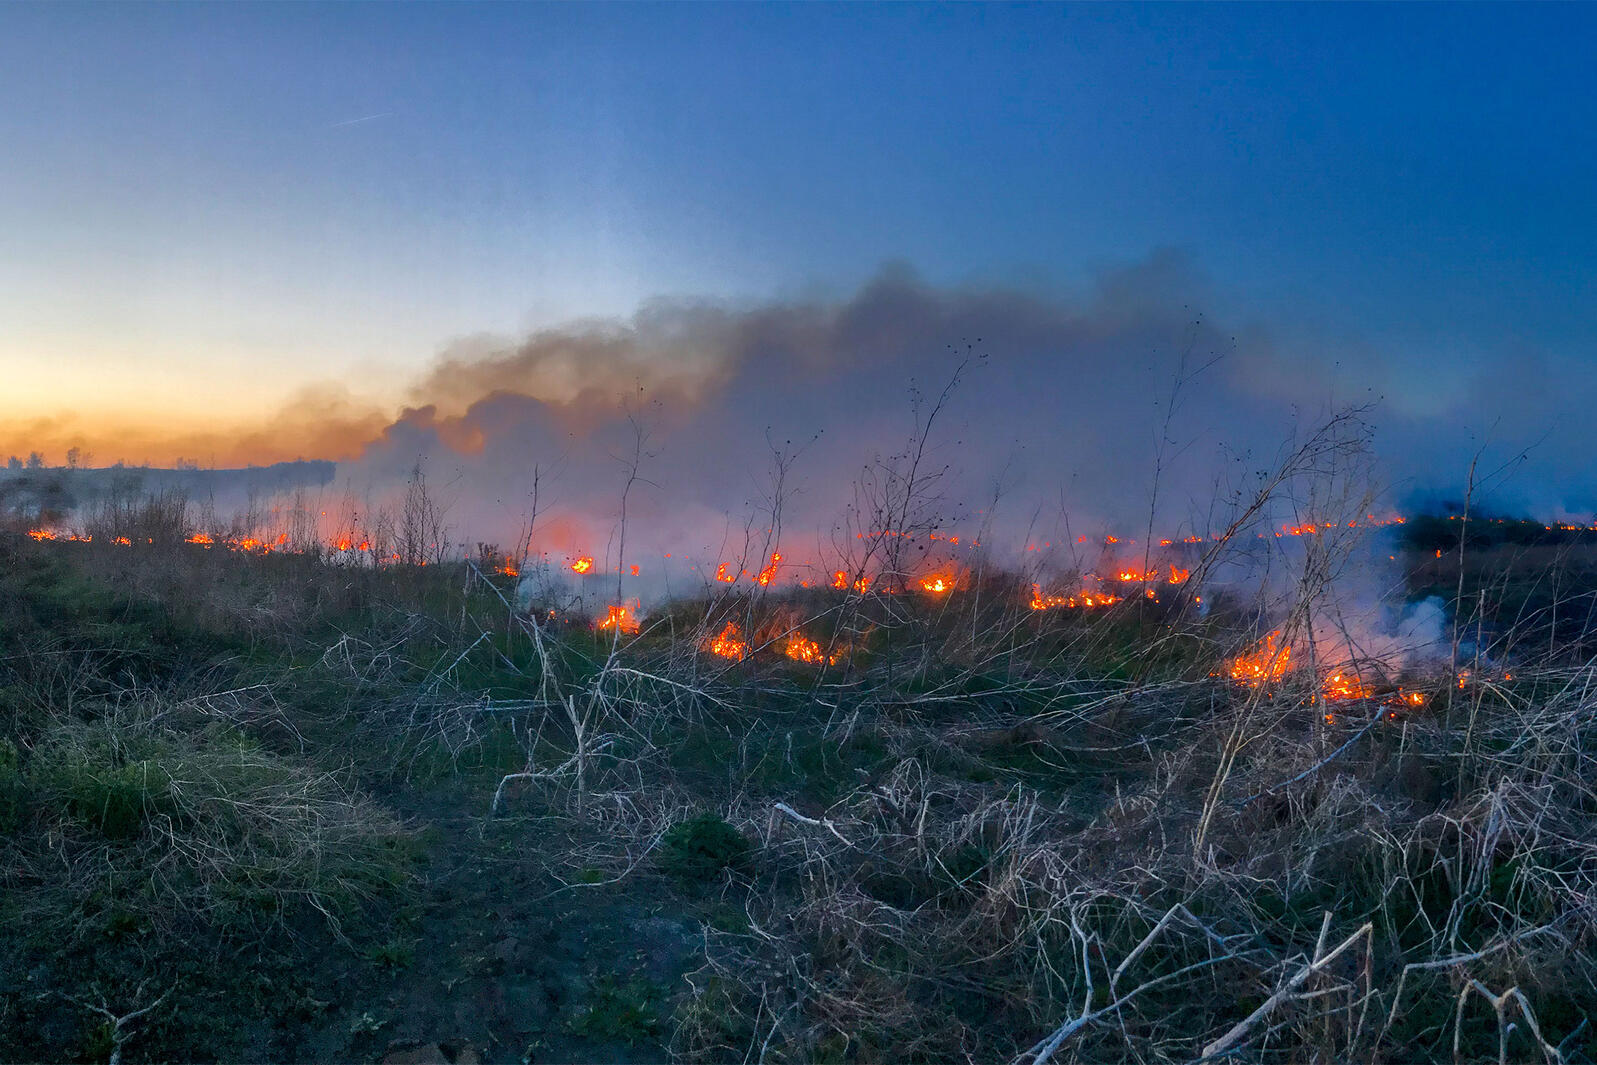 Sun sets on a prescribed burn in Nebraska. Burn crews are able to contain a prescribed burn accurately and consistently within the targeted area. Ed Hubbs